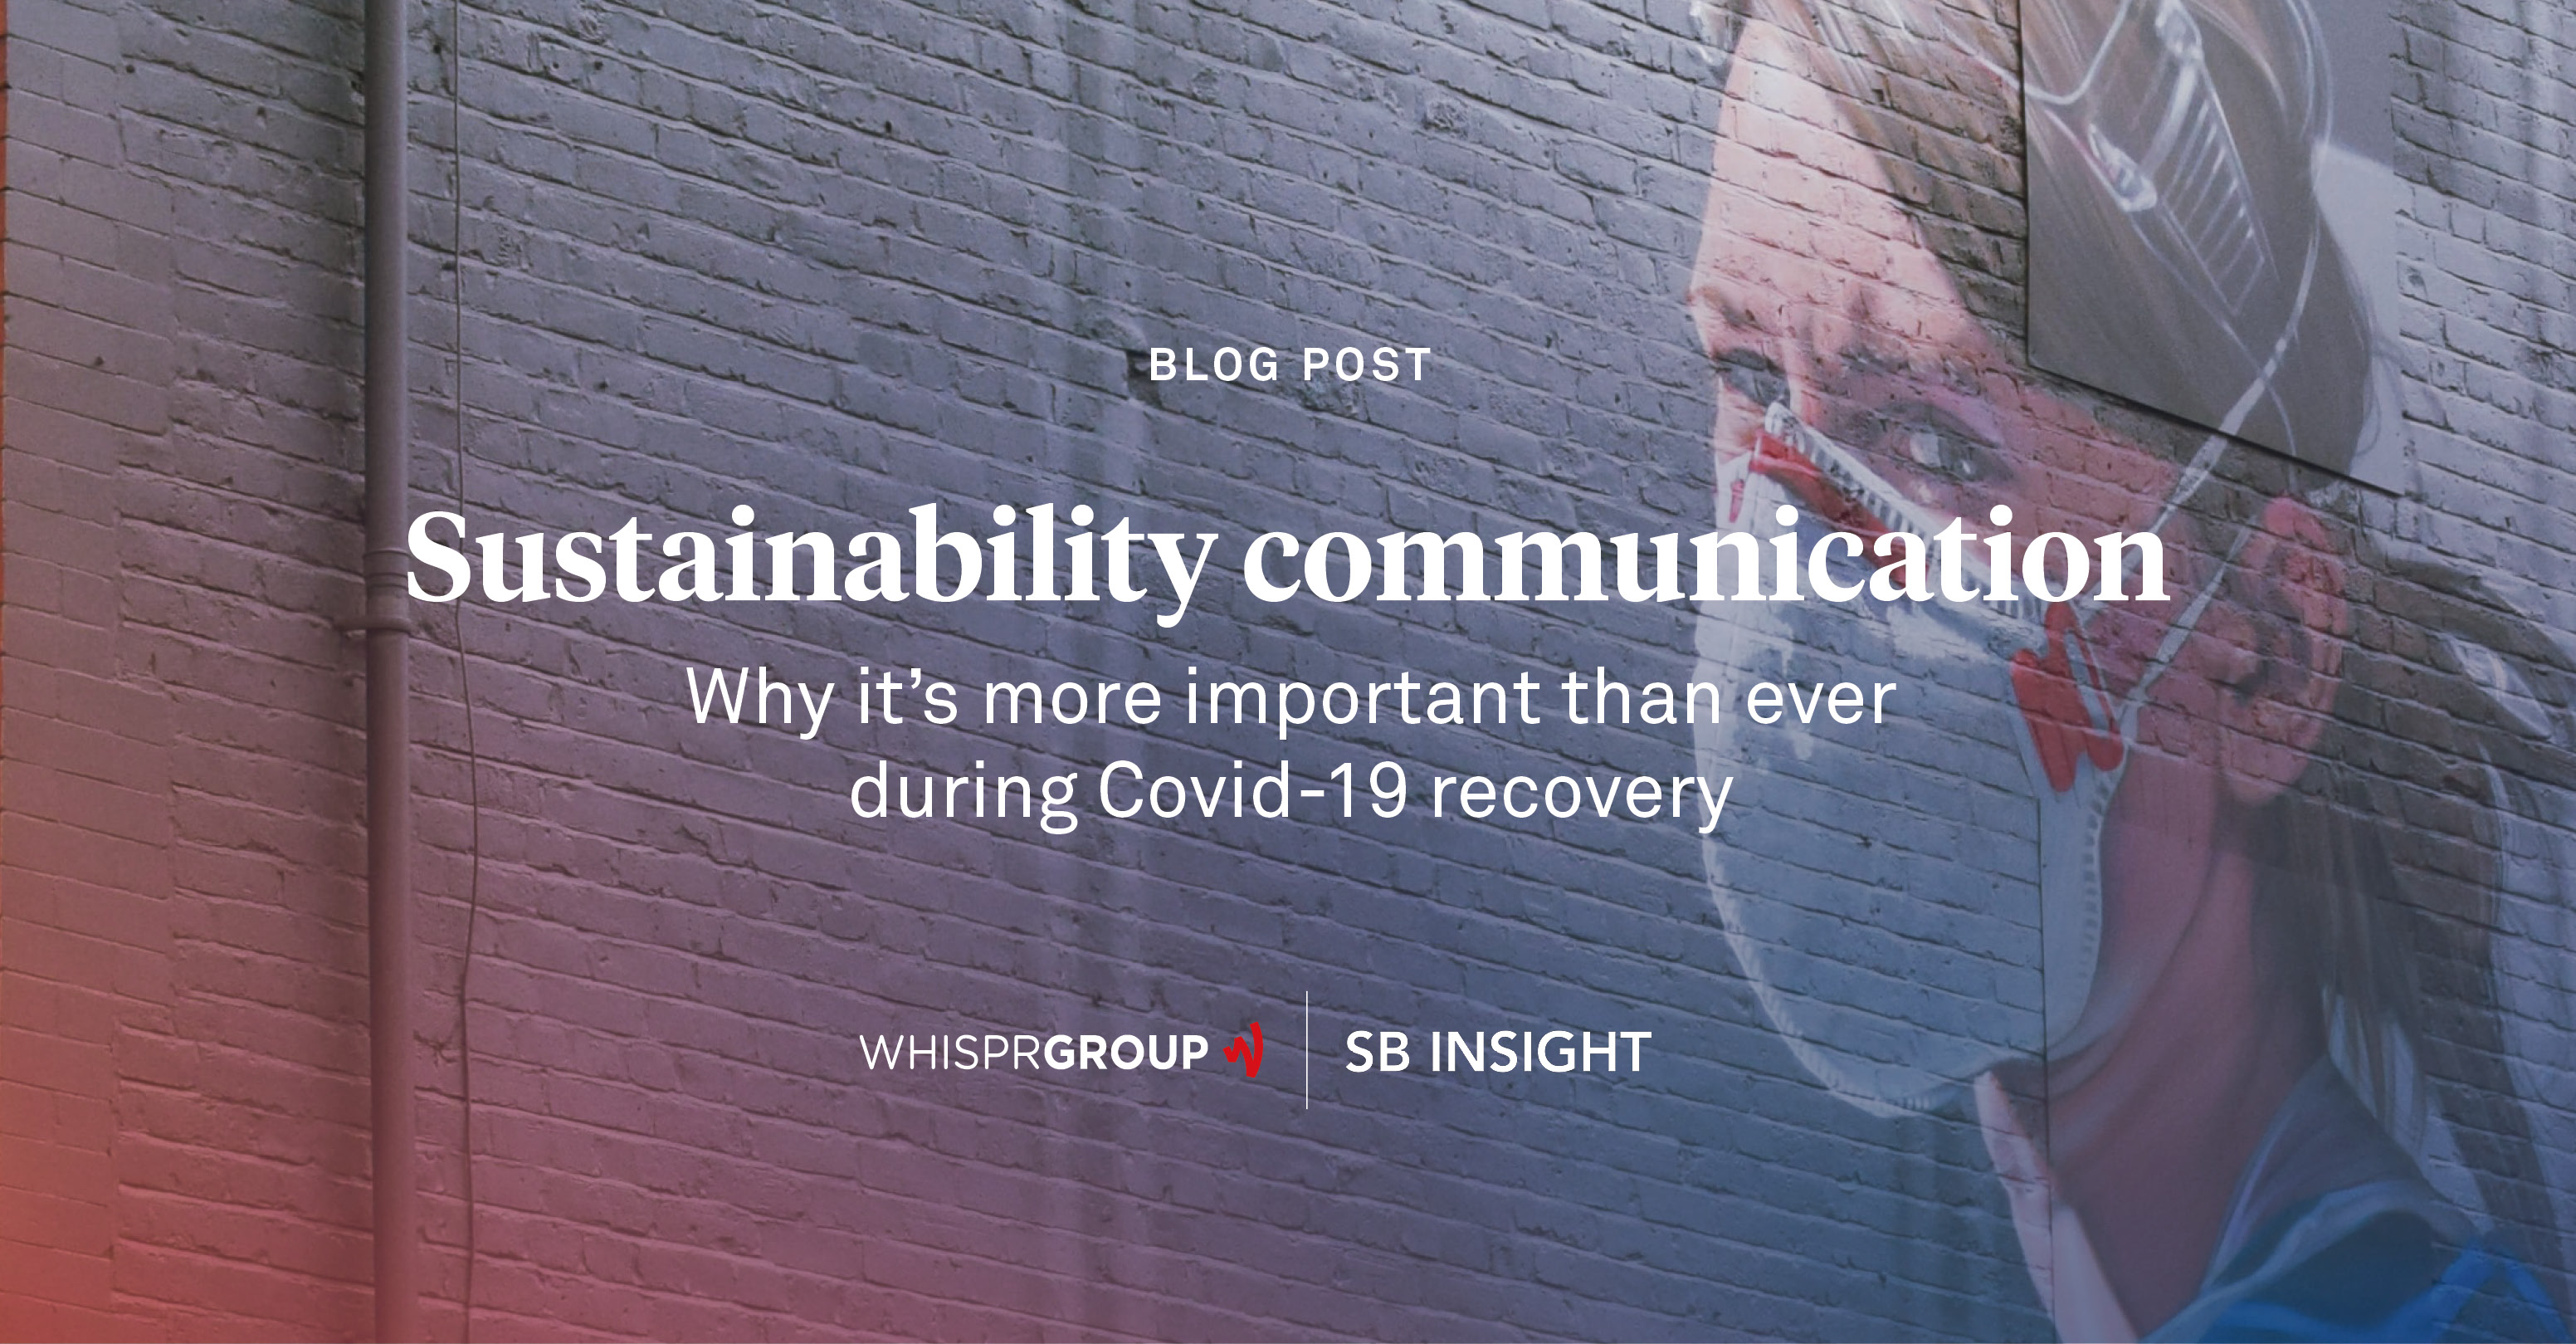 Sustainability communication is particularly challenging during the covid-19 recovery